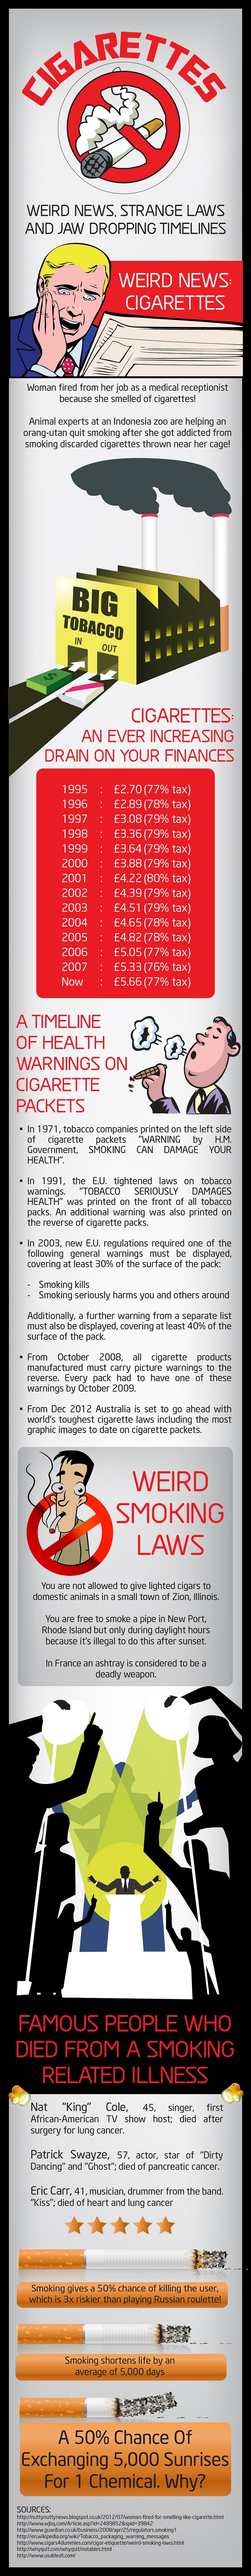 Timeline on Health Warning on Cigarettes and Some Weird Laws